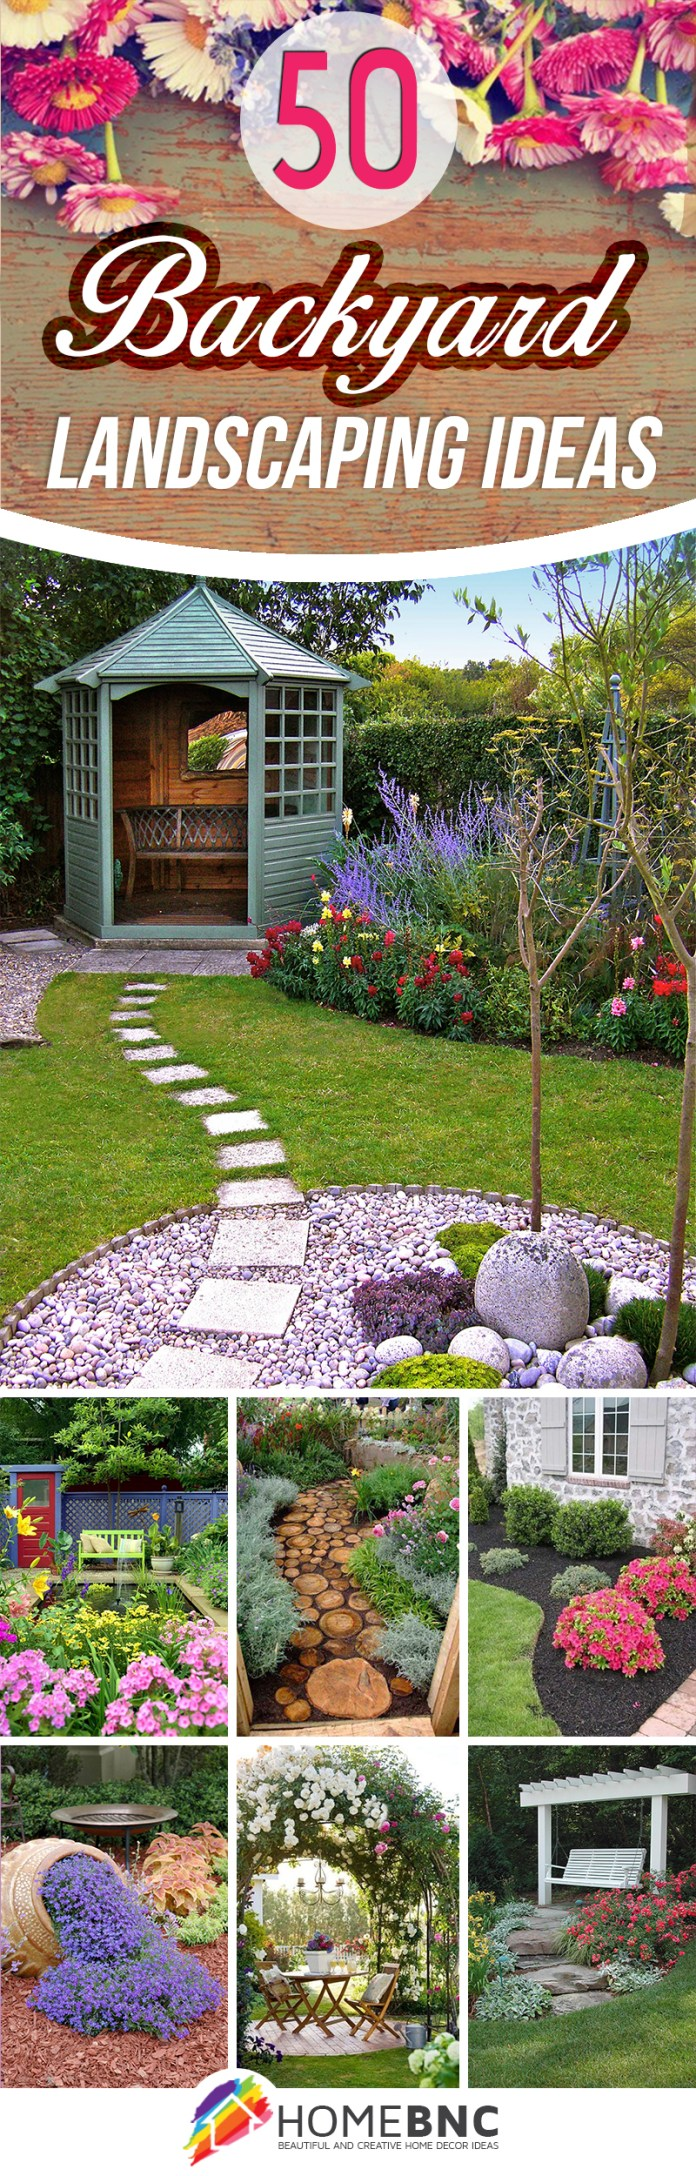 16.SIMPHOME.COM best backyard landscaping ideas and designs in 2022